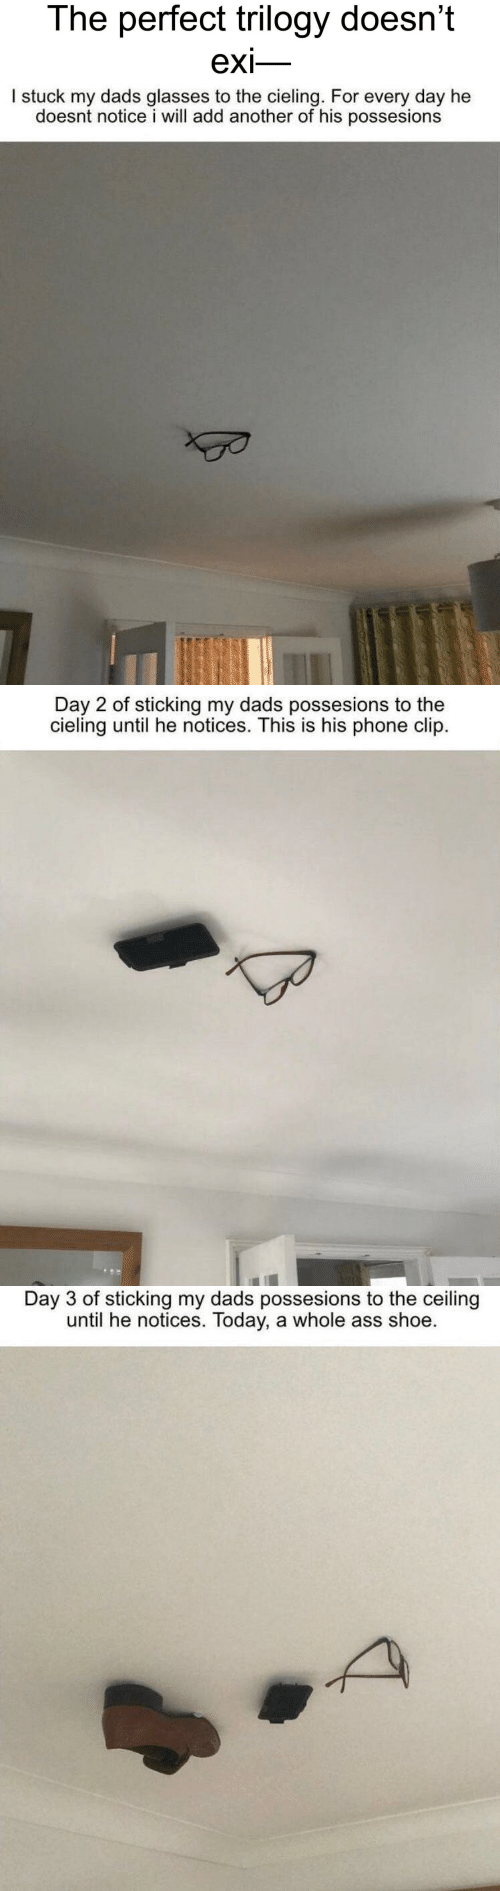 Clip: The perfect trilogy doesn't  exi-   I stuck my dads glasses to the cieling. For every day he  doesnt notice i will add another of his possesions   Day 2 of sticking my dads possesions to the  cieling until he notices. This is his phone clip.   Day 3 of sticking my dads possesions to the ceiling  until he notices. Today, a whole ass shoe.